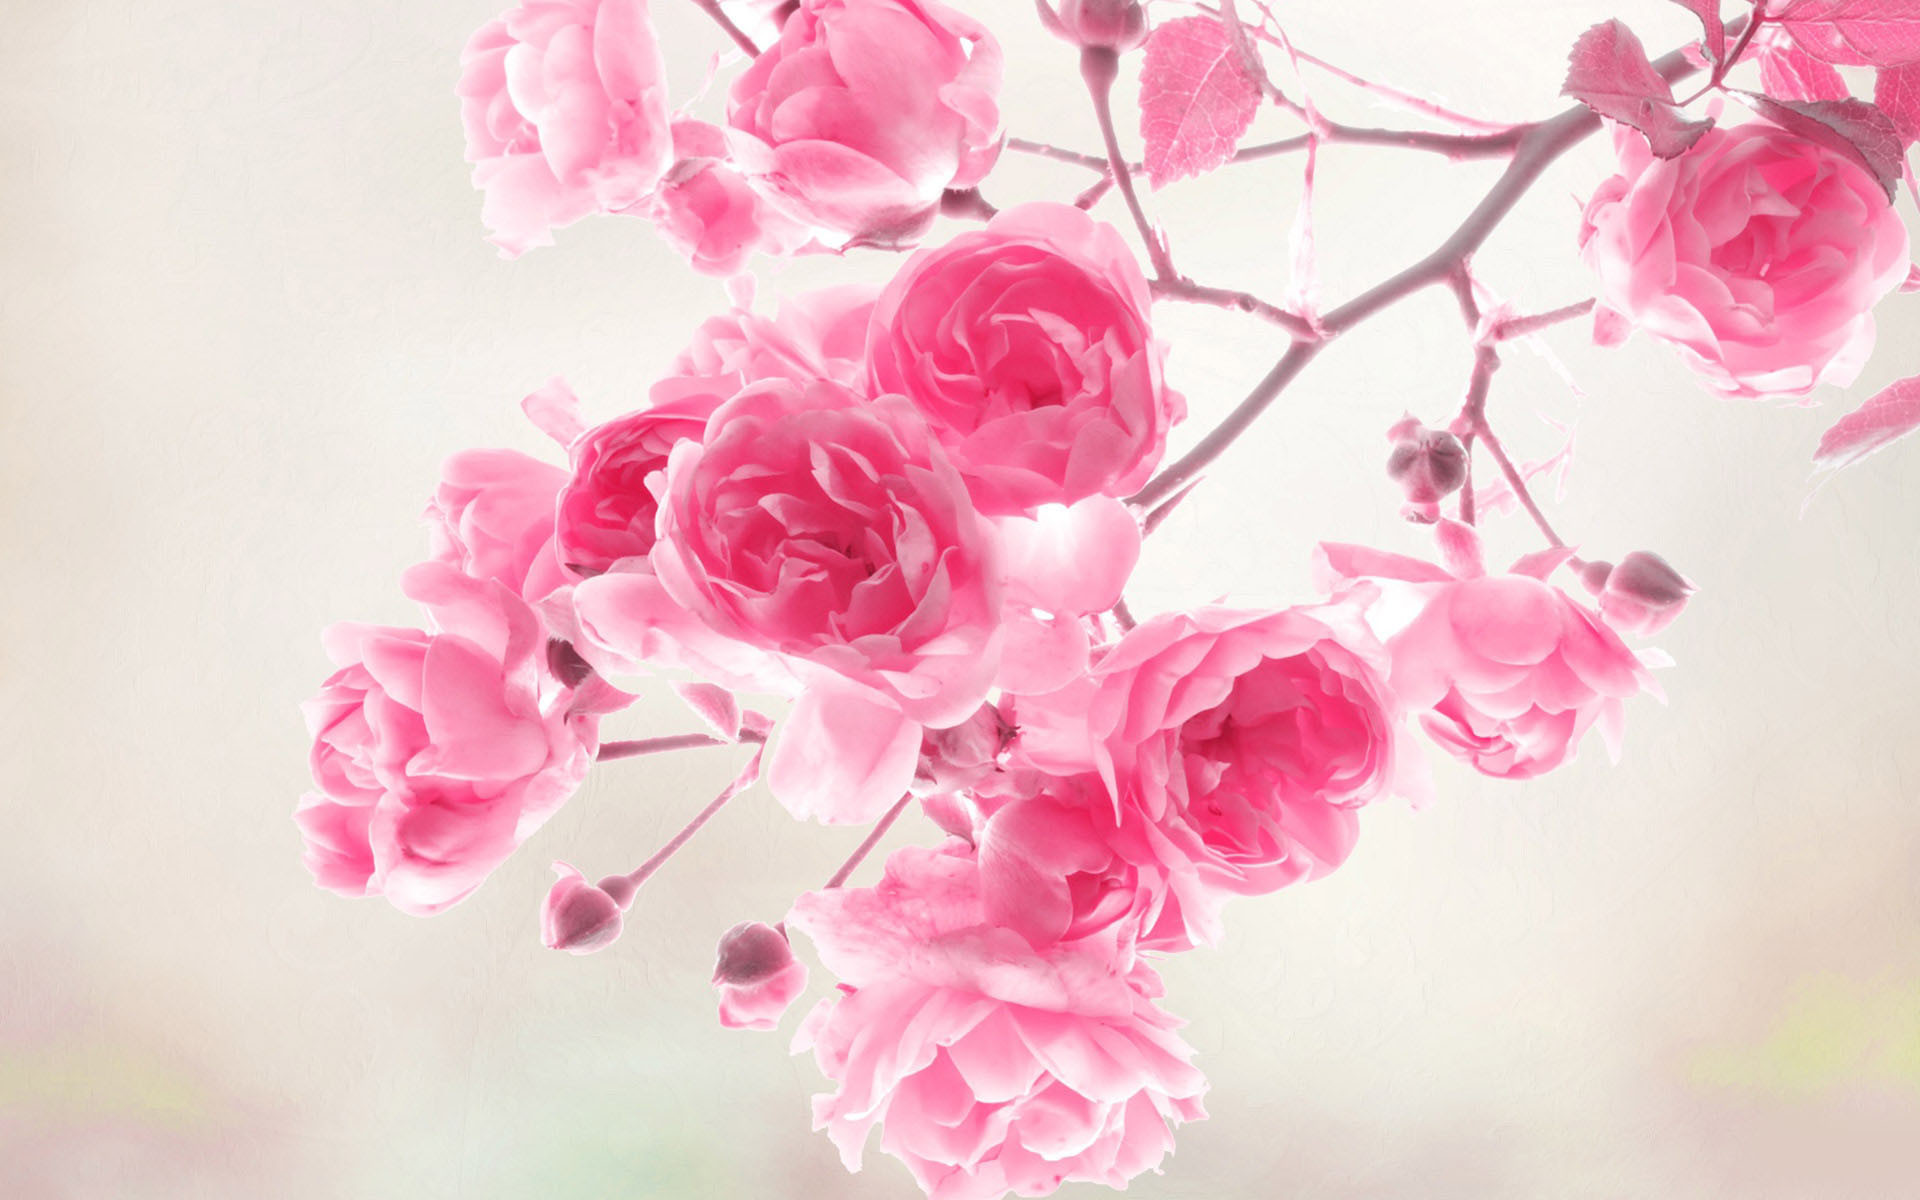 Res: 1920x1200, Size: 1024 x 640 roses flower wallpaper